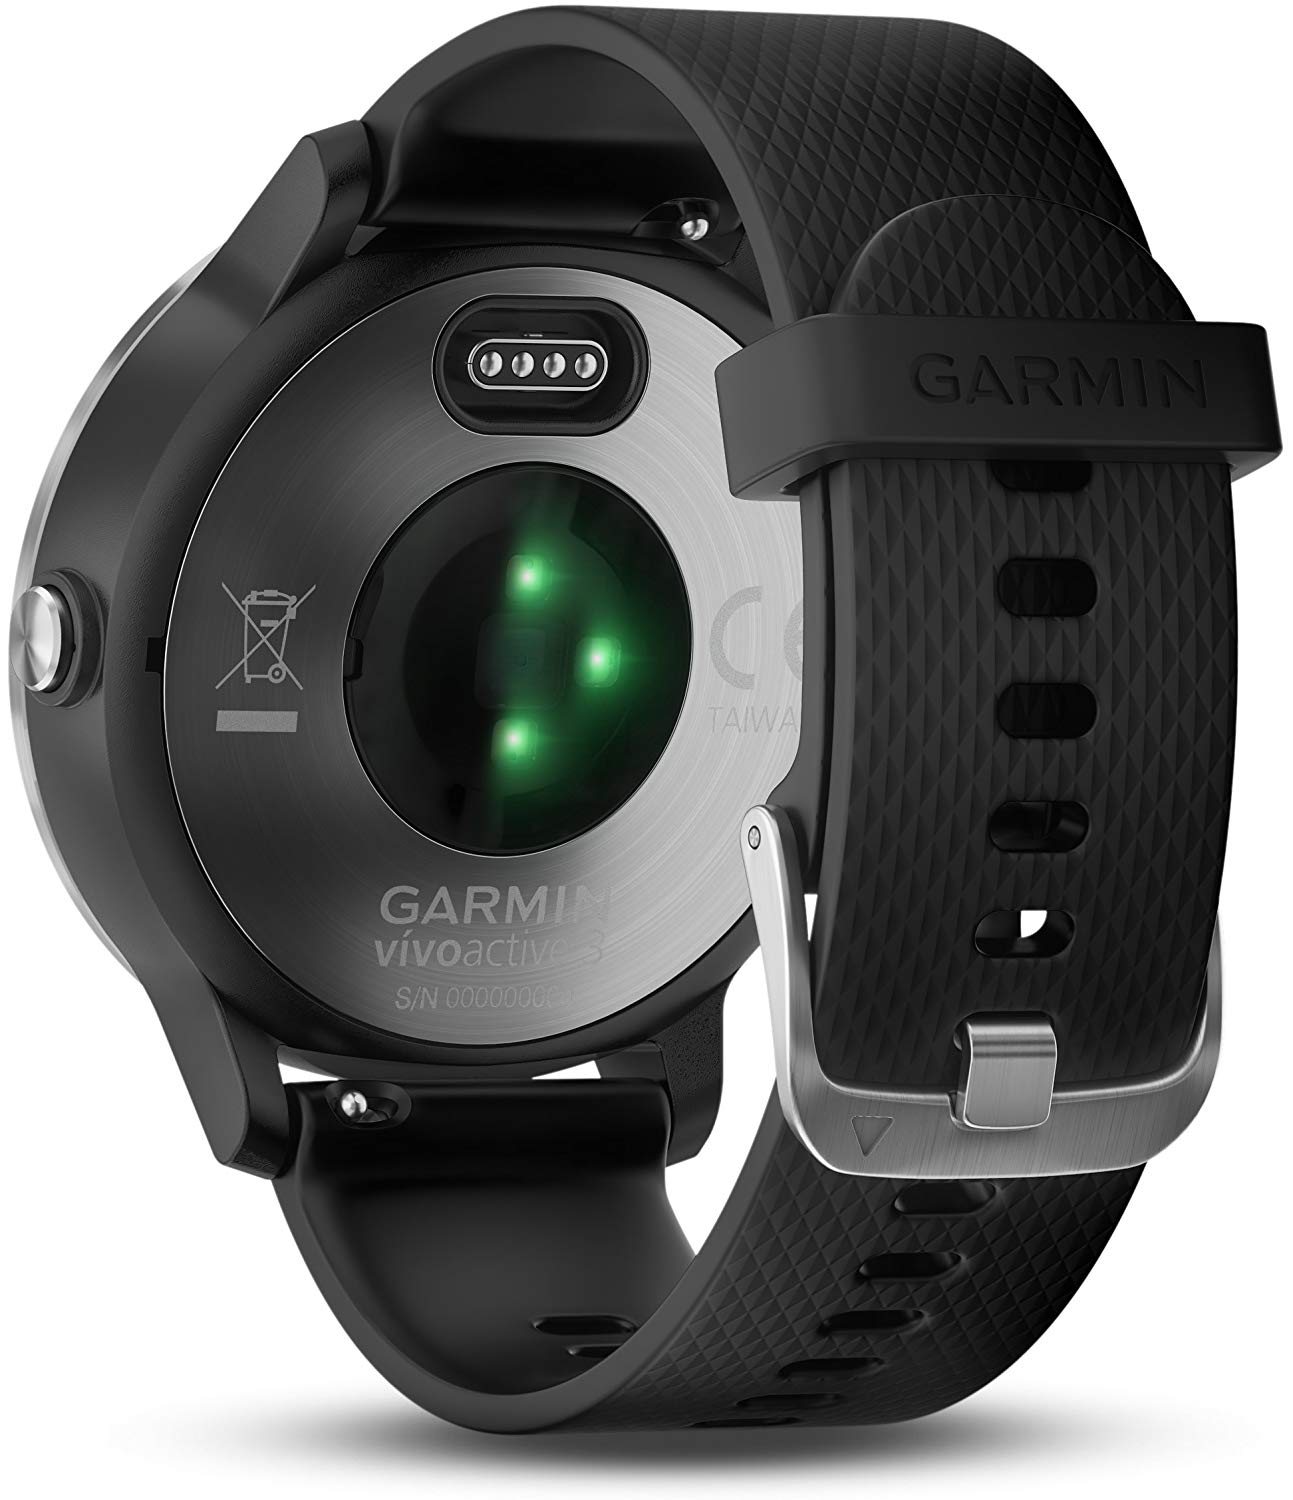 Garmin Vivoactive 3 Back